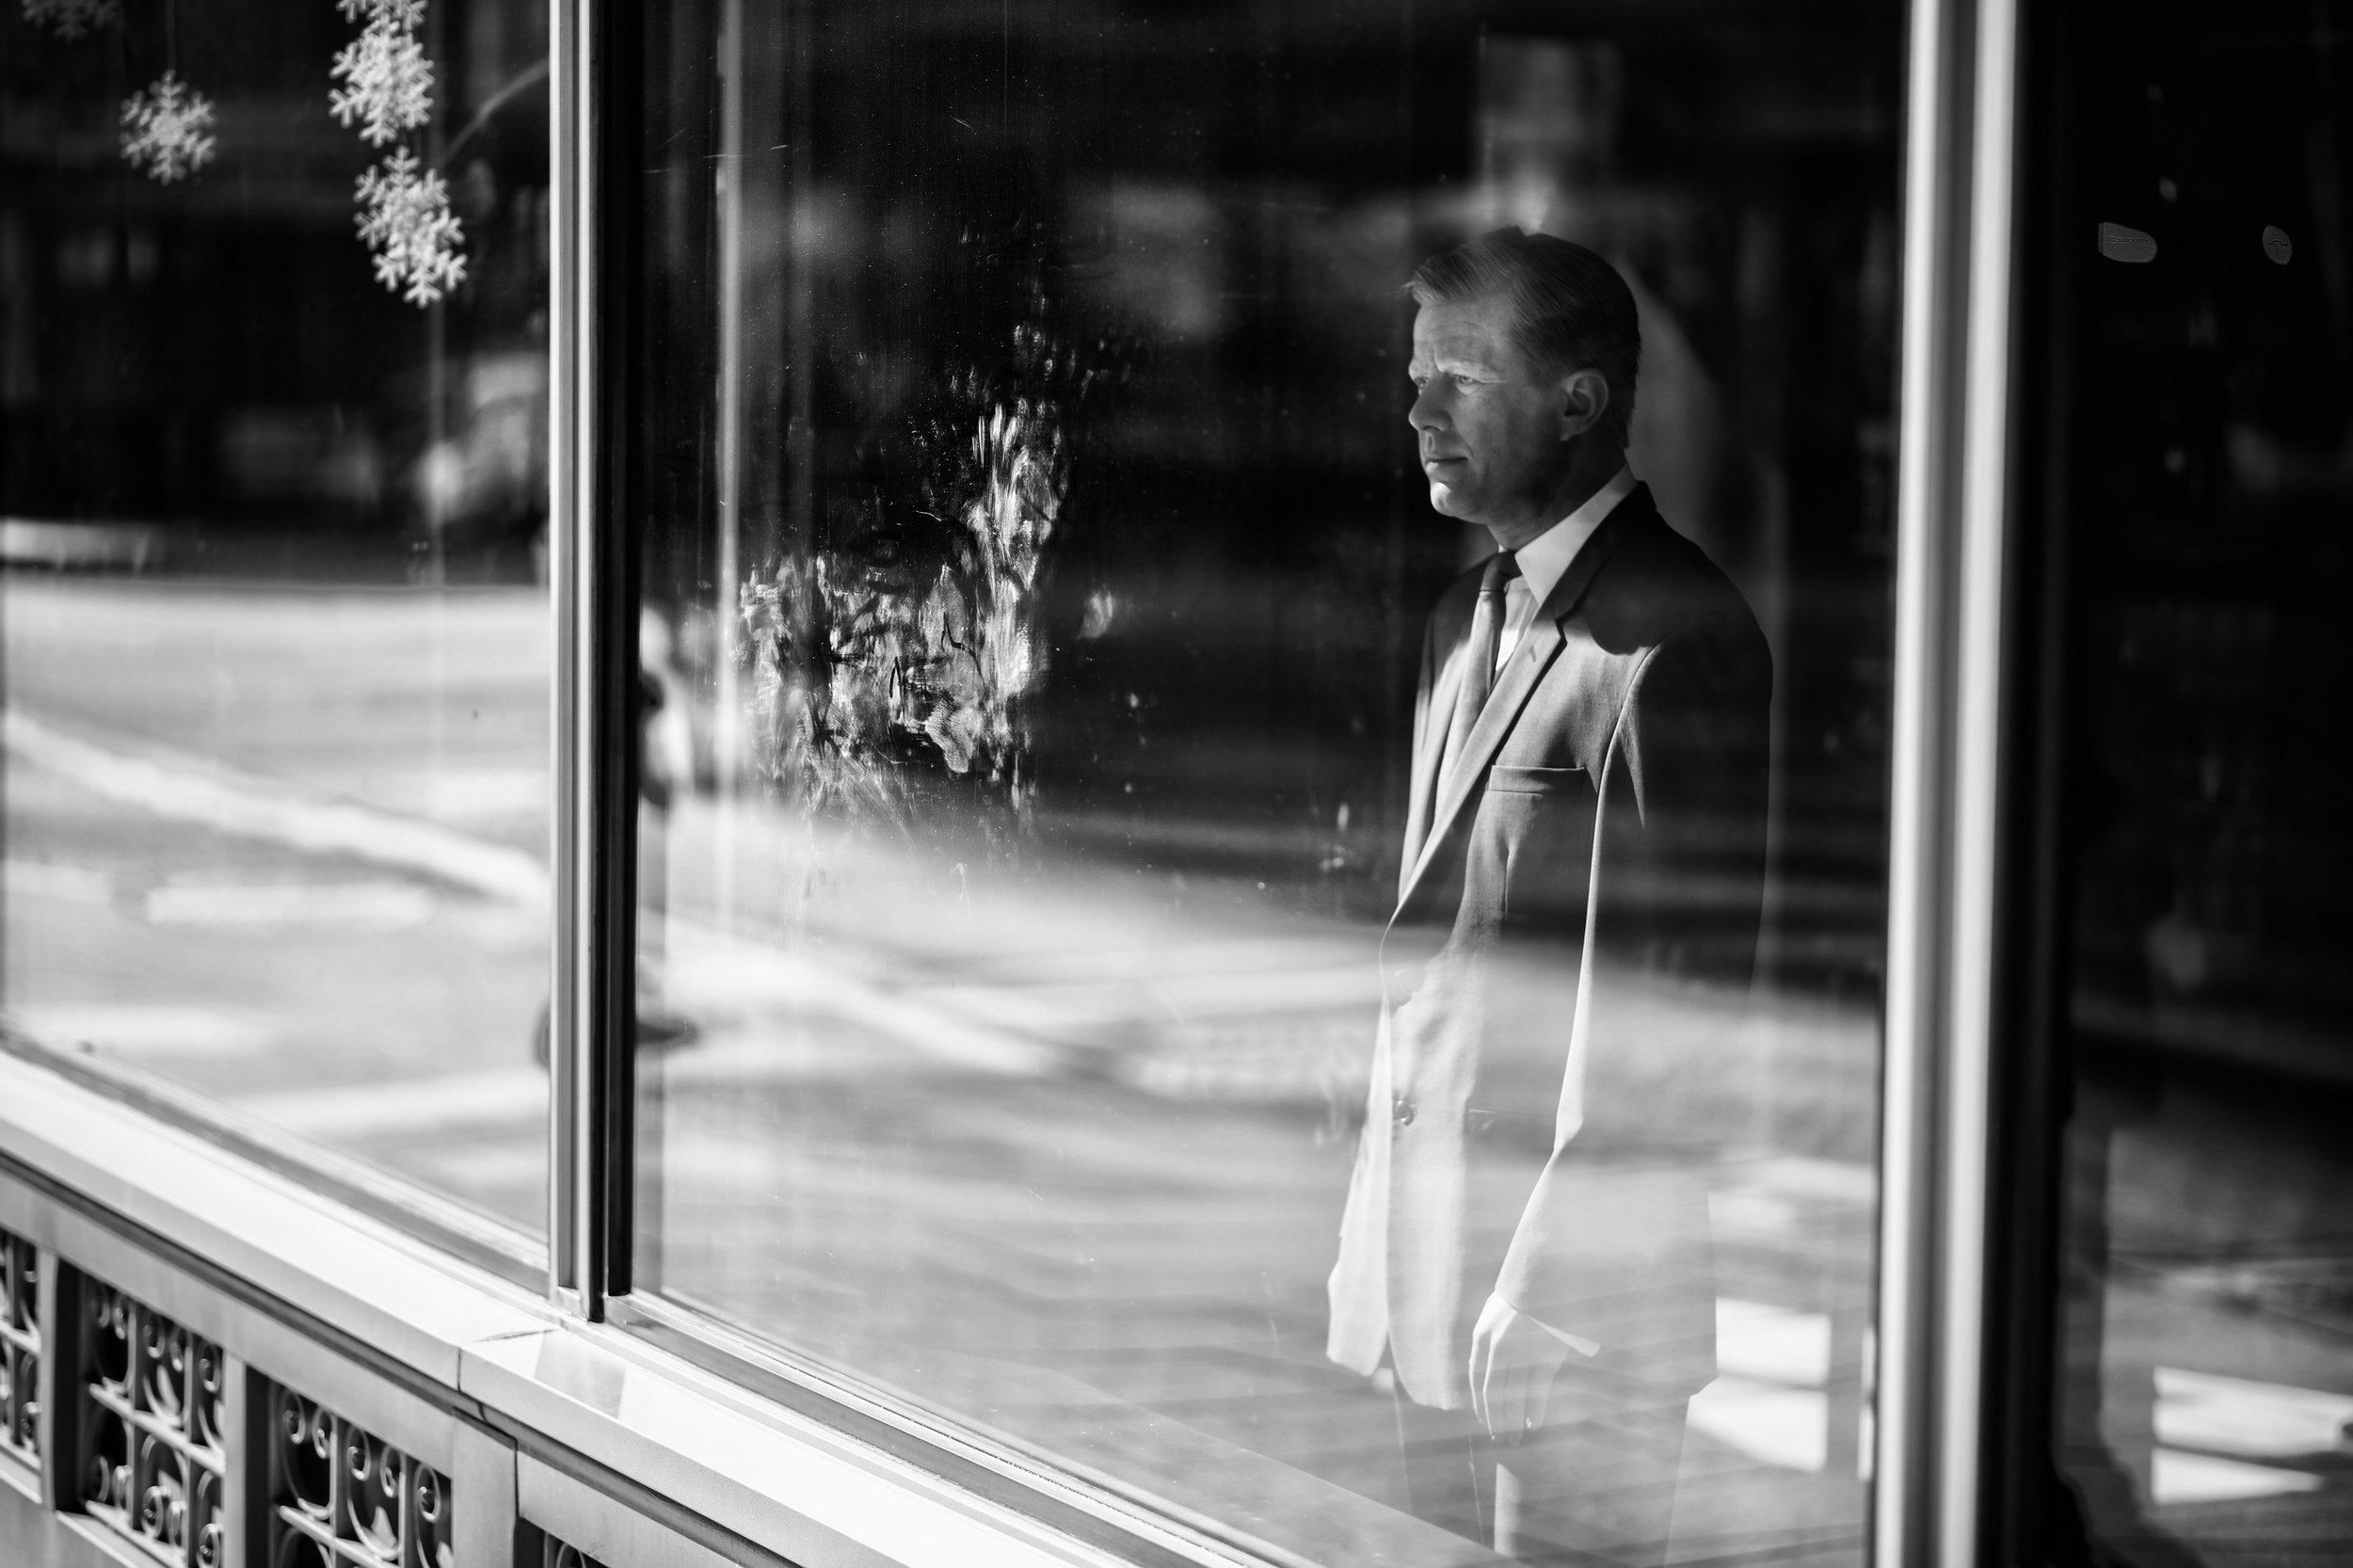 Day 18 : A wax figure of President John F. Kennedy faces out a window in downtown DC on February 6, 2017.